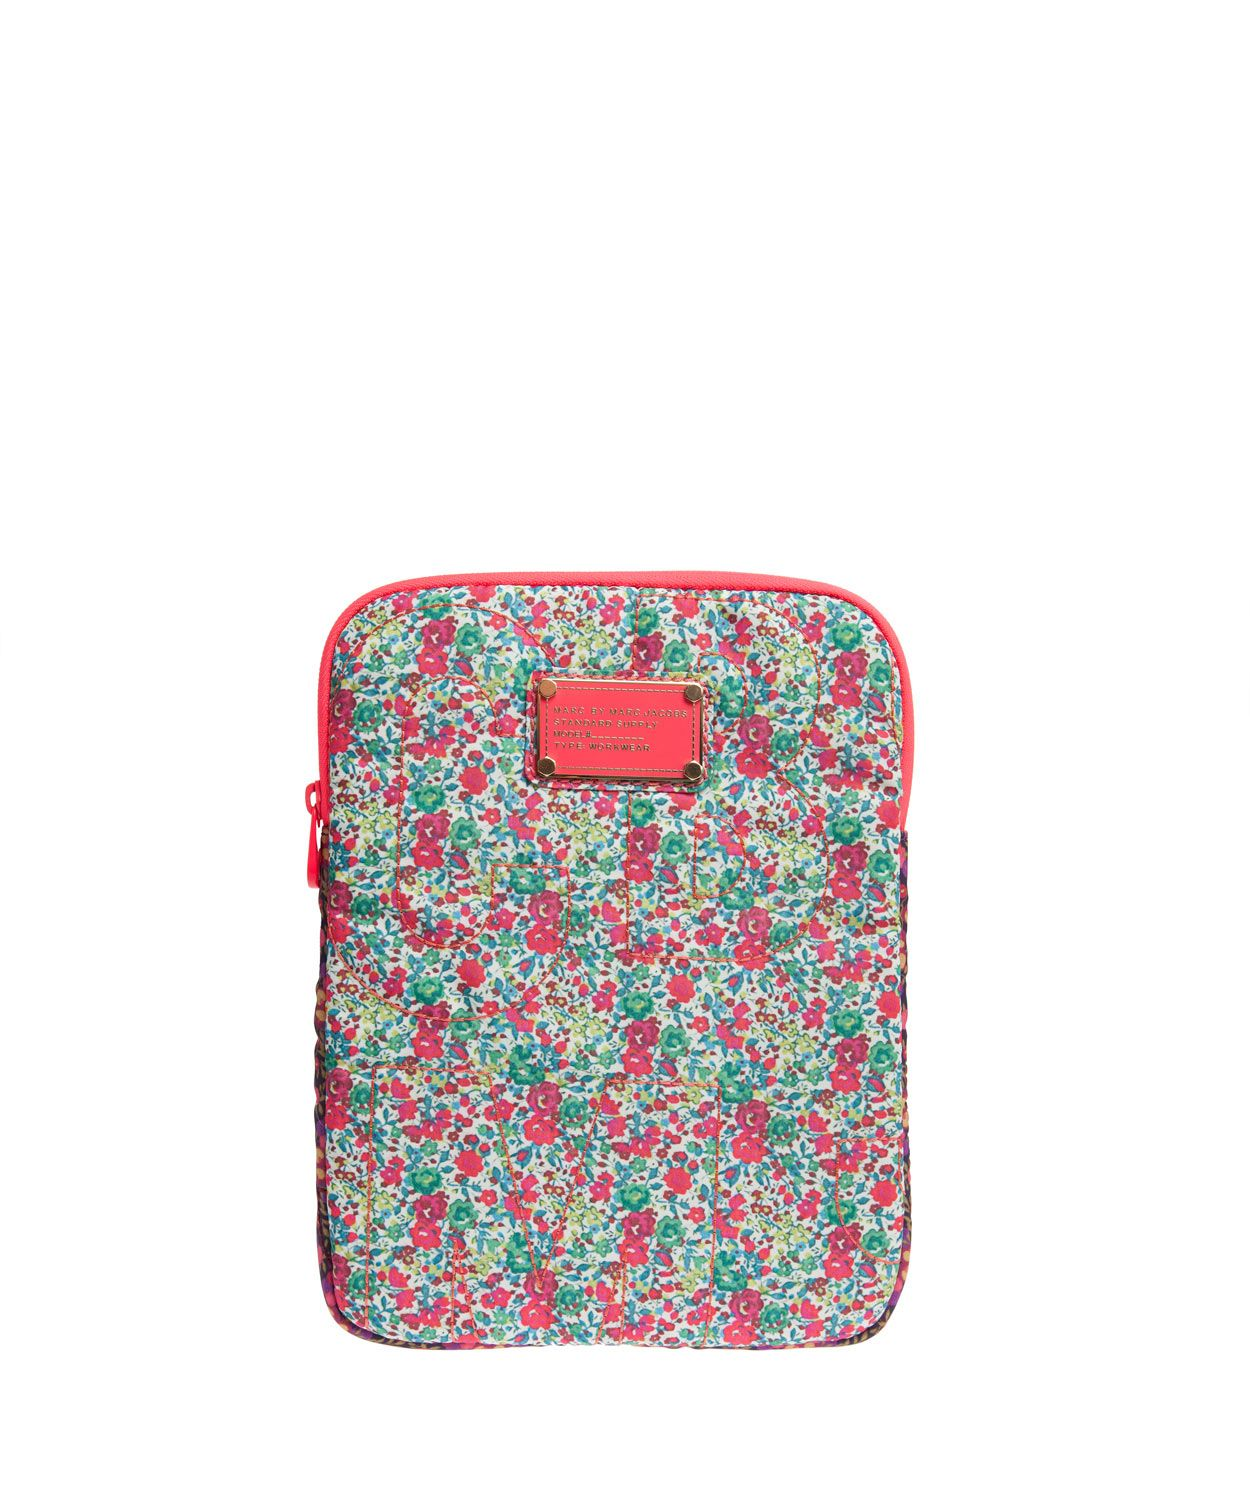 Emma and Georgina Liberty Print Pretty Nylon Tablet Case, Marc by Marc Jacobs x Liberty. Shop more accessories form the Marc by Marc Jacobs x Liberty collection online at Liberty.co.uk